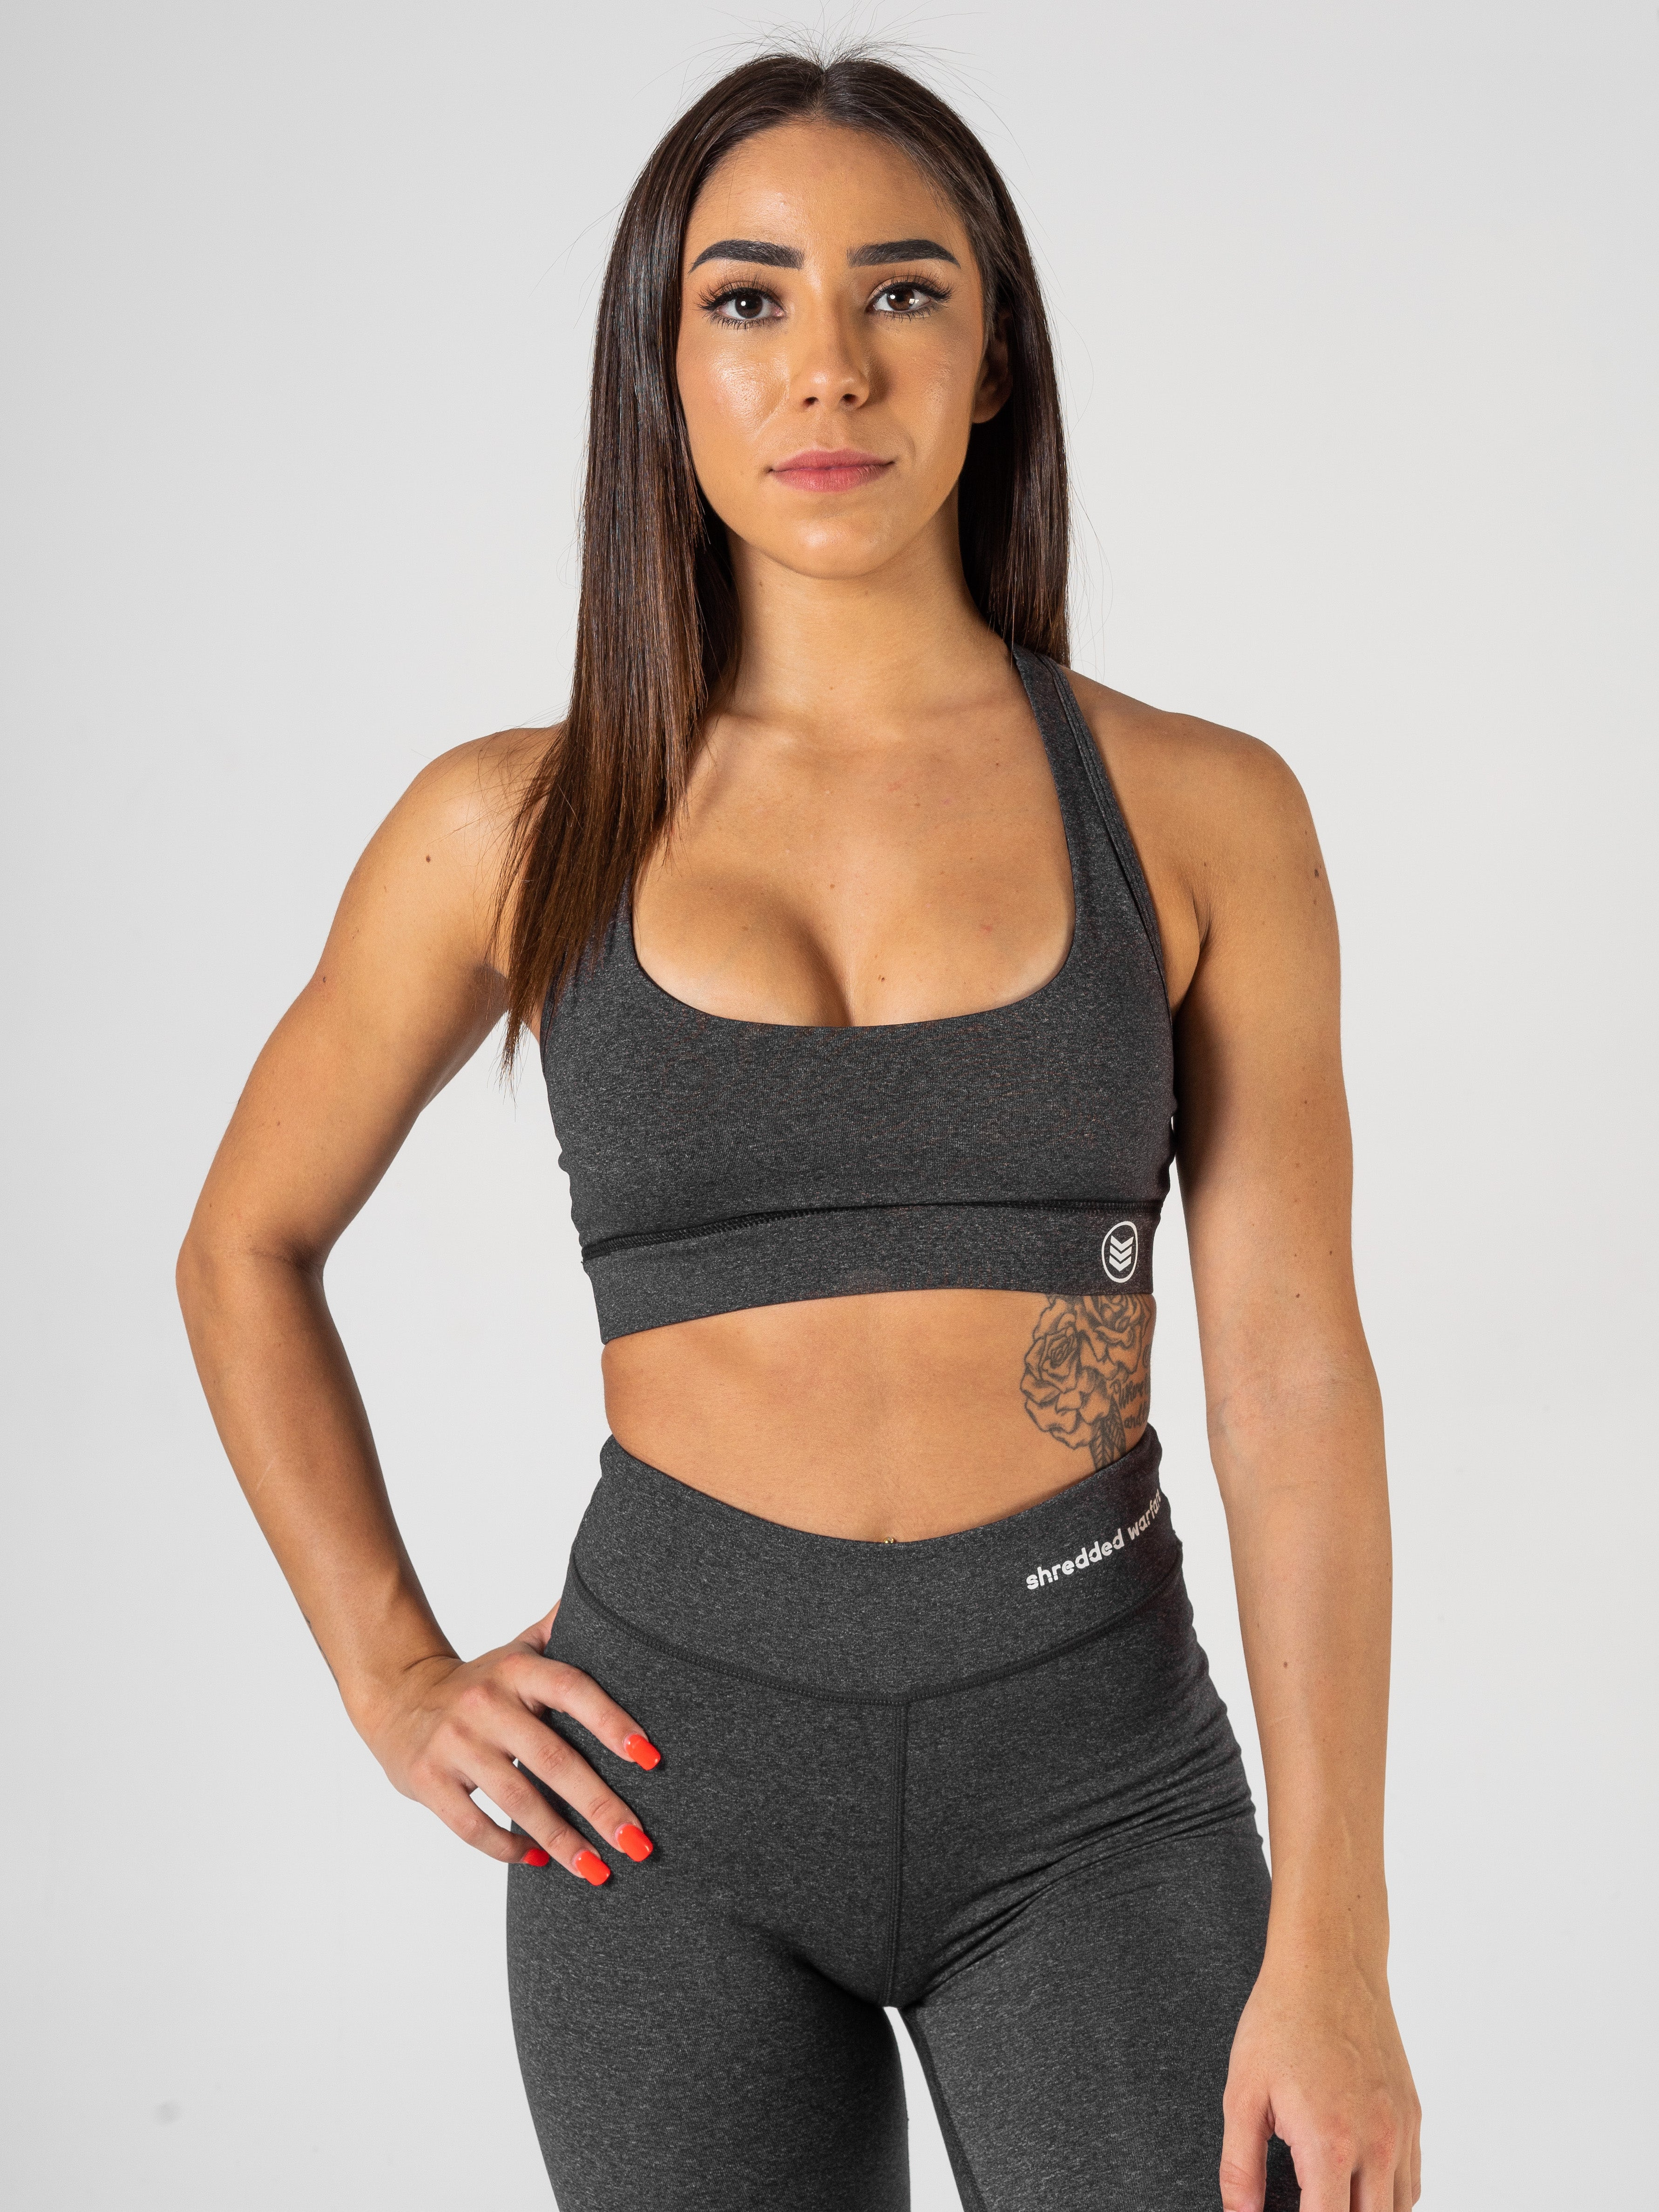 Ladies-U-Sports-Bra-Charcoal-Front-Shredded-Warfare